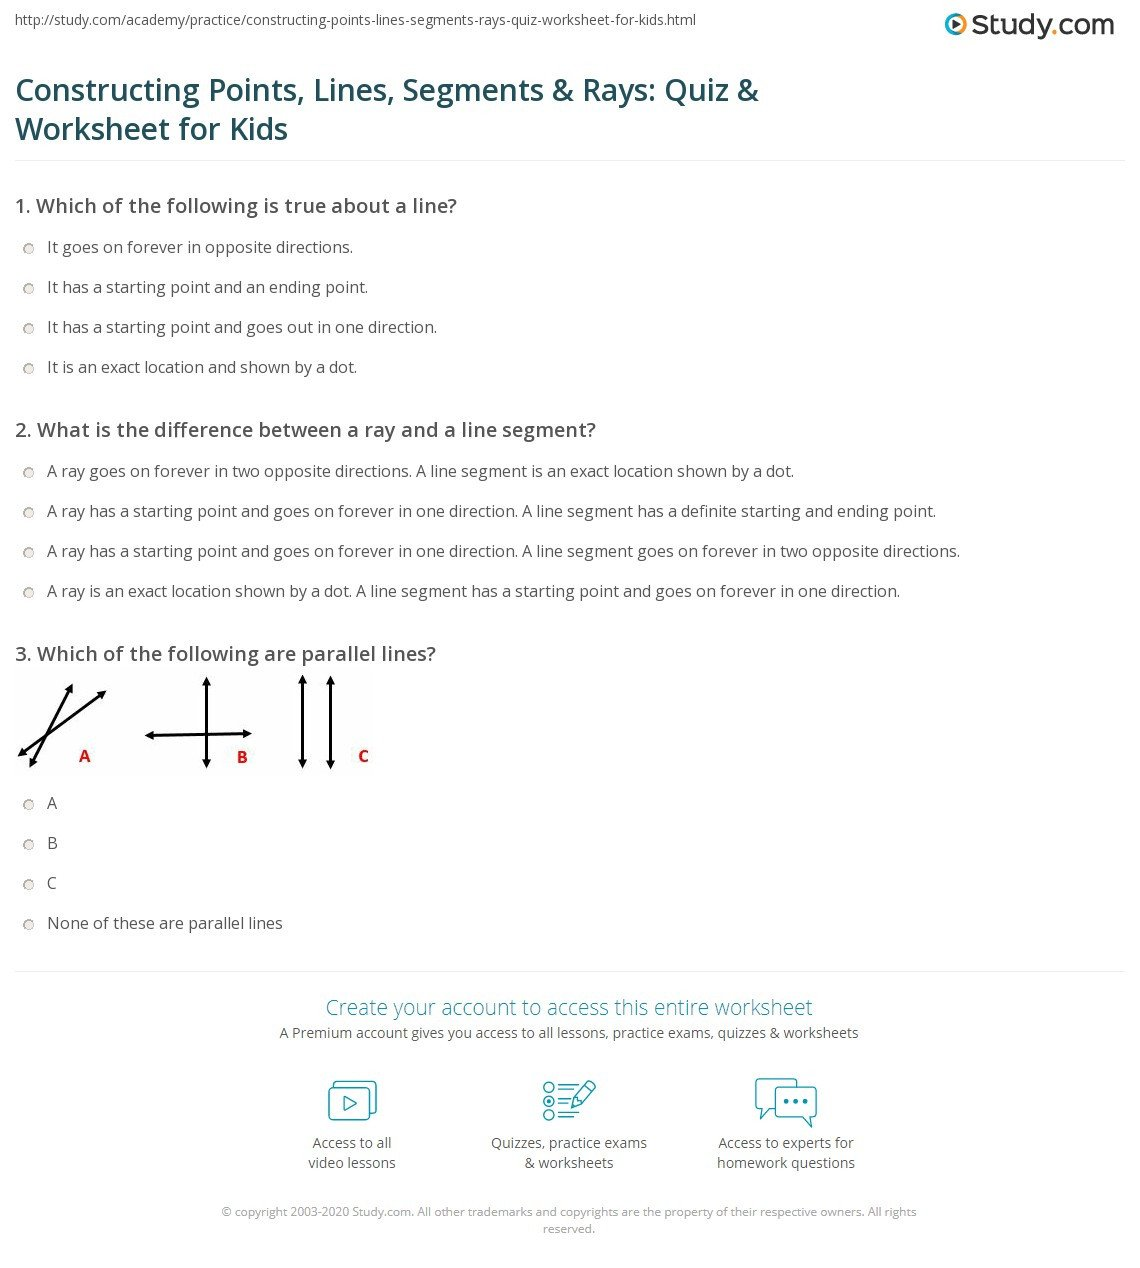 Lines Rays Line Segments Worksheets Constructing Points Lines Segments & Rays Quiz